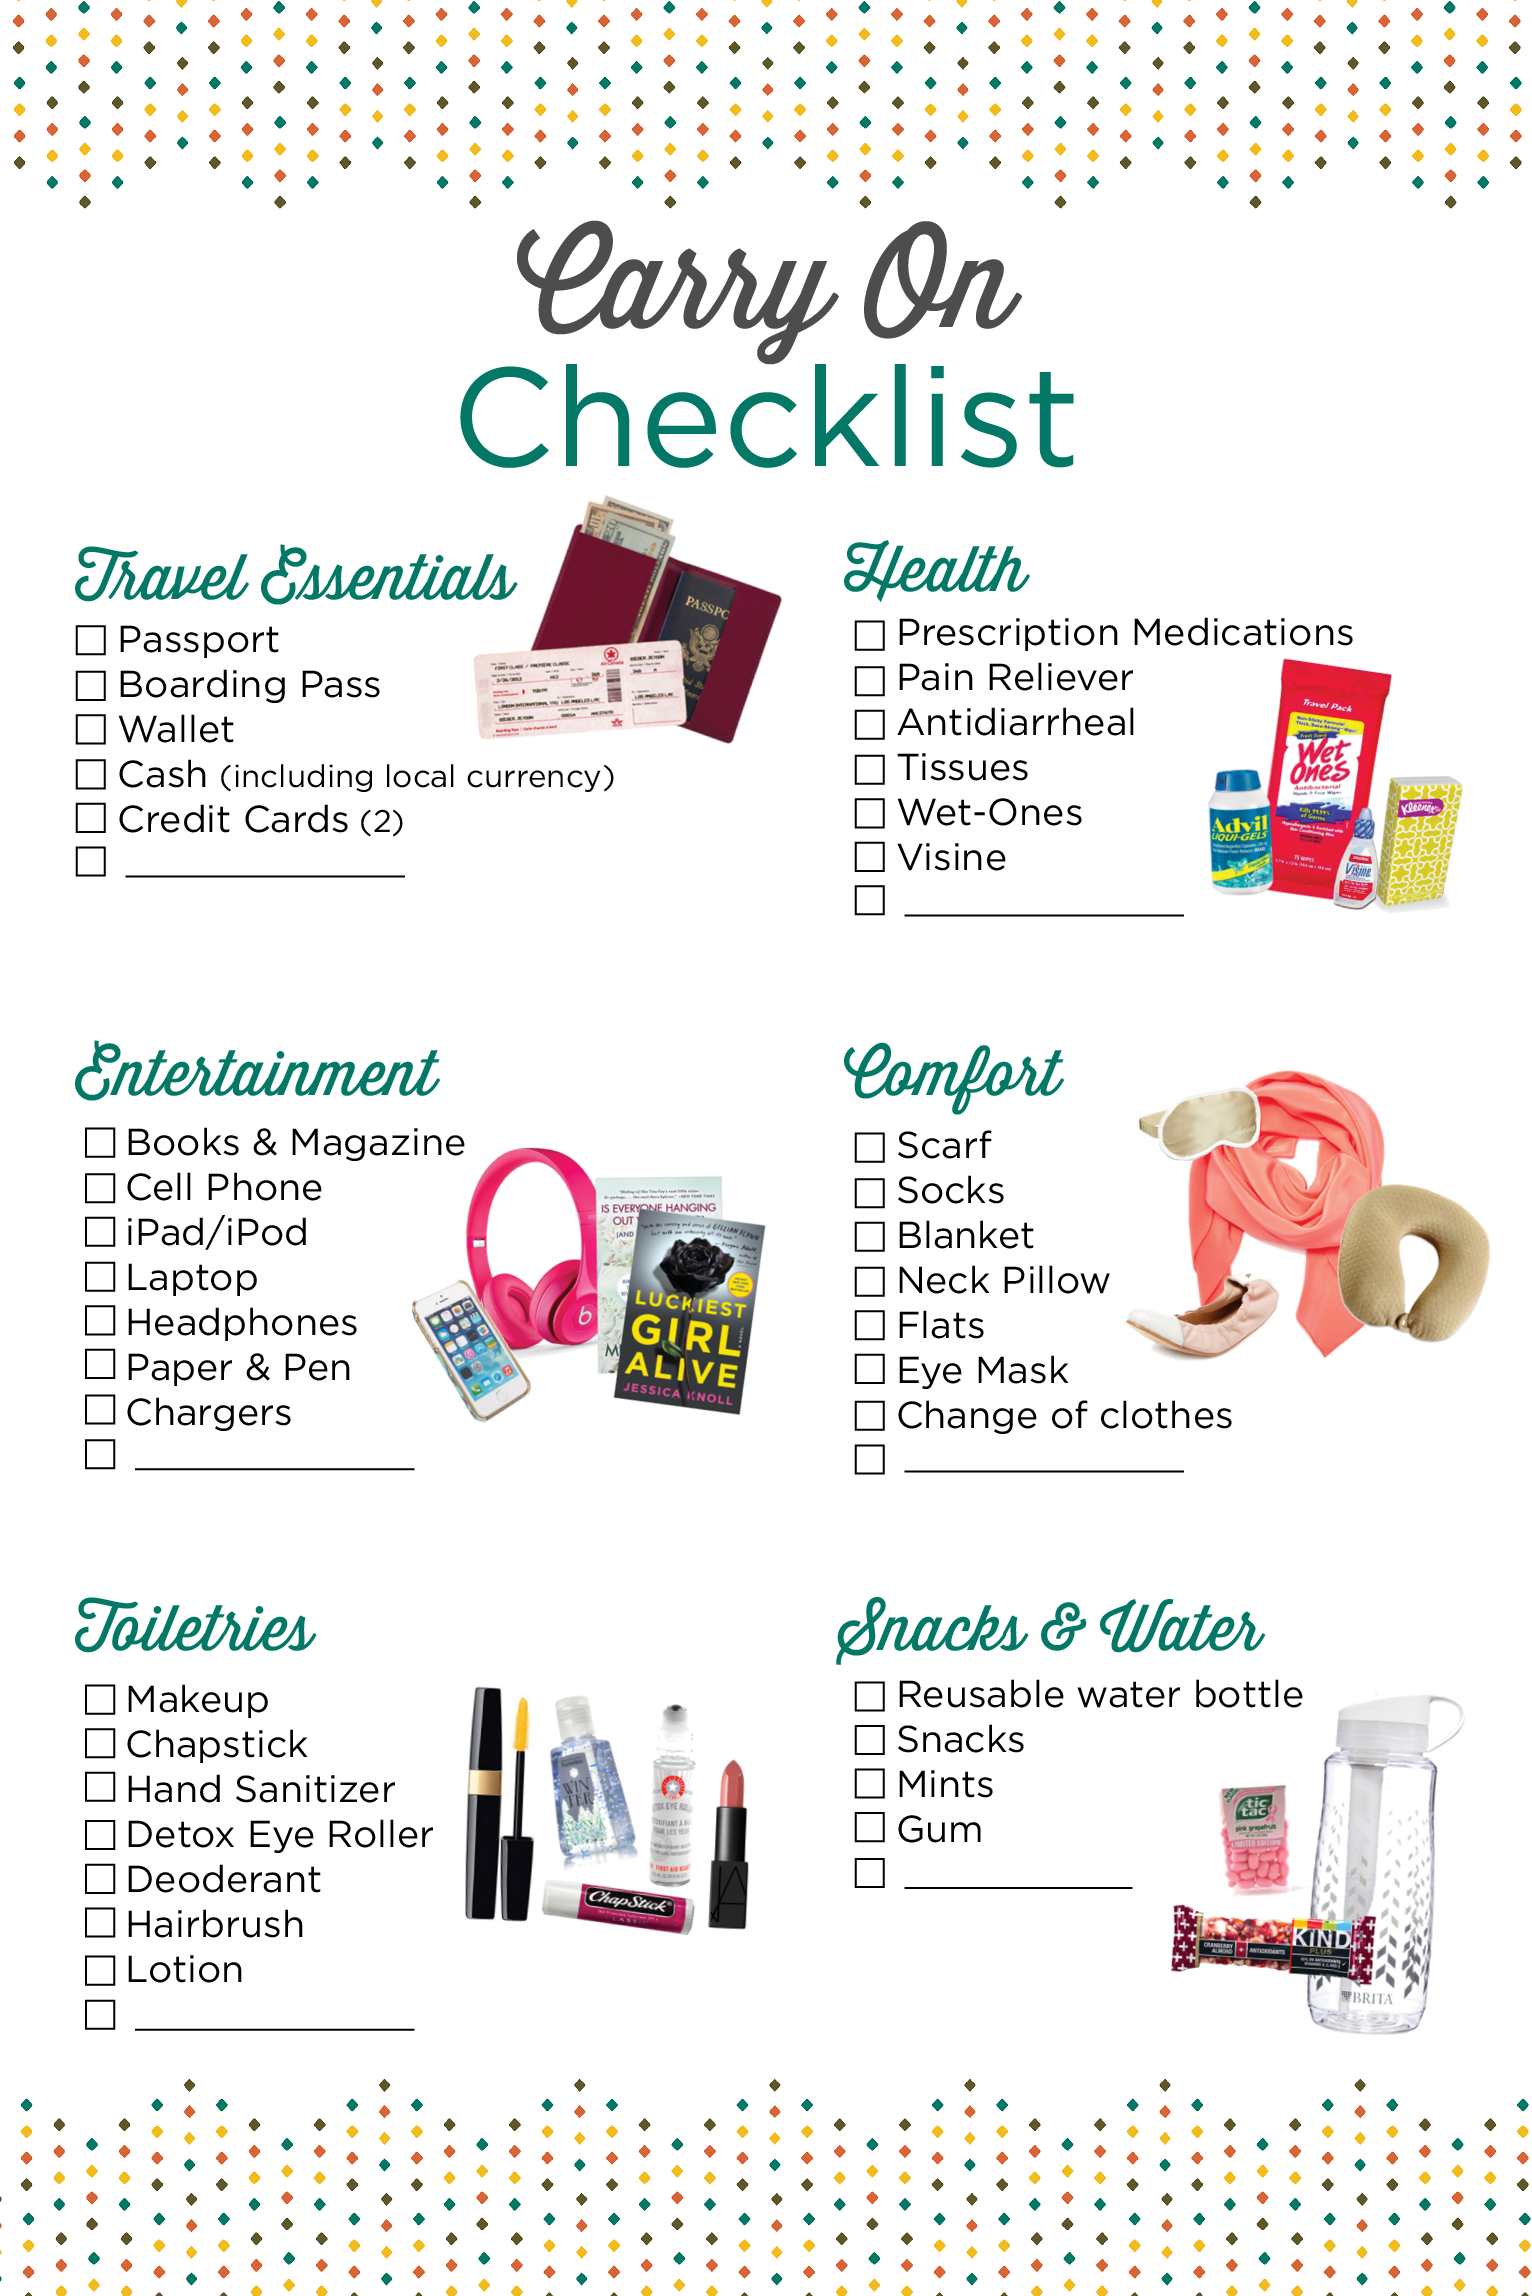 use this carry on checklist to make sure you have everything you need for a flight